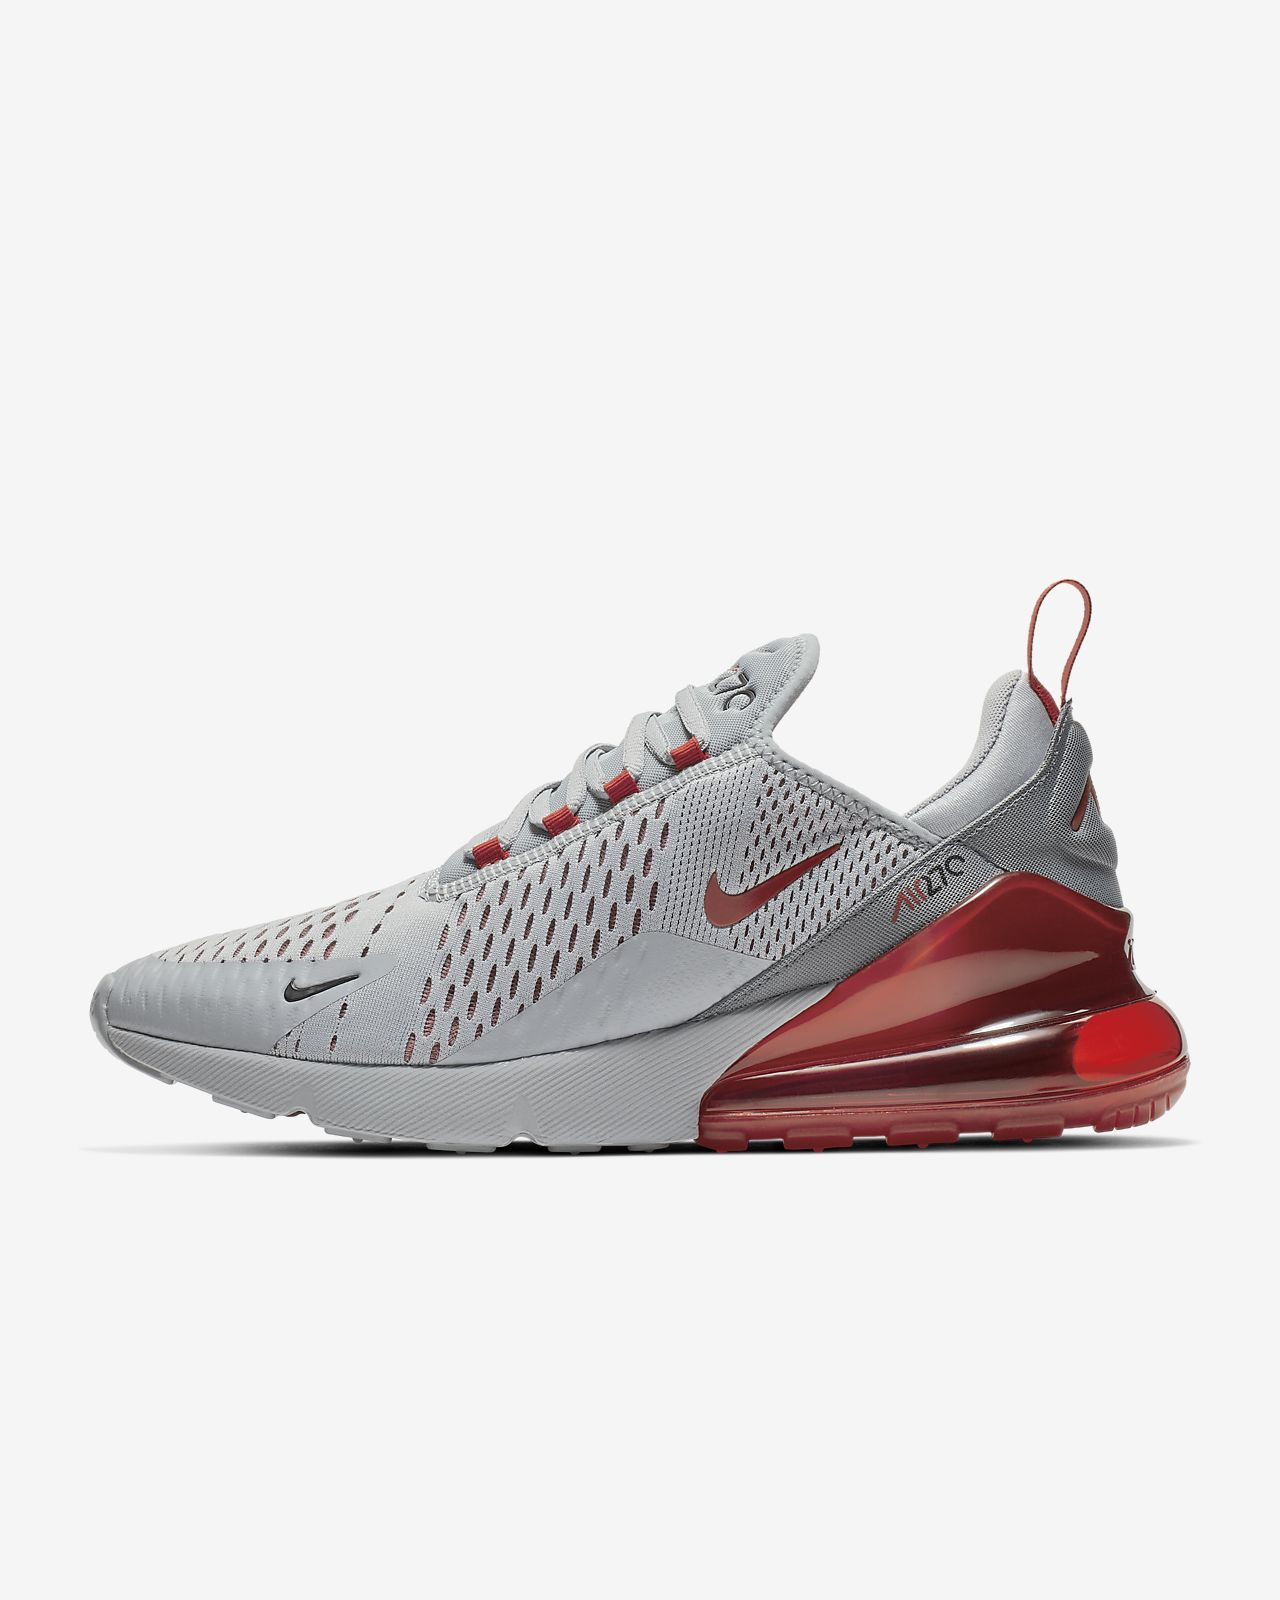 cheap for discount c8403 8159c Low Resolution Nike Air Max 270 Herrenschuh Nike Air Max 270 Herrenschuh